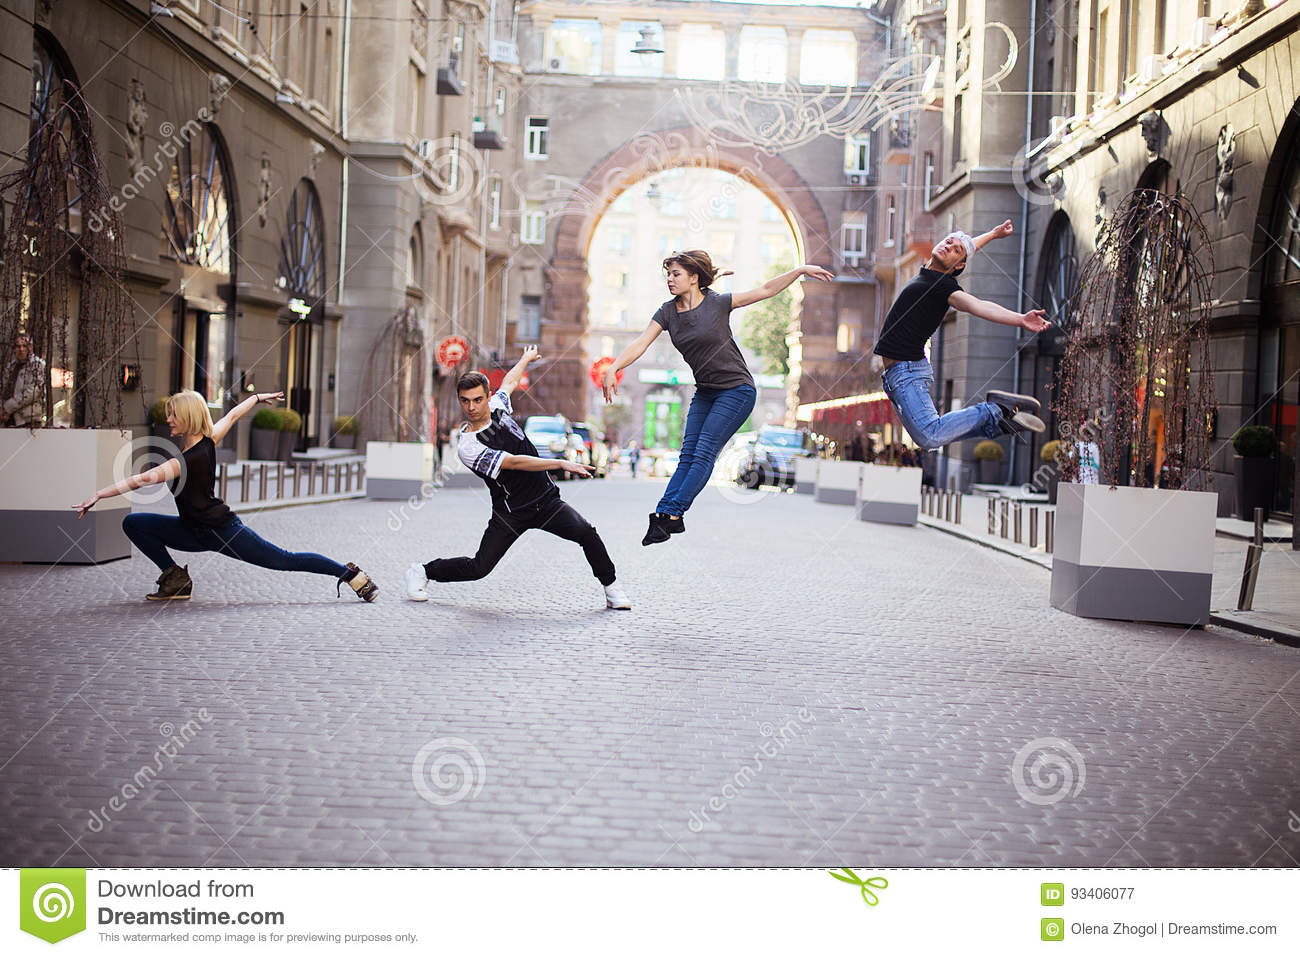 Dancers on the street